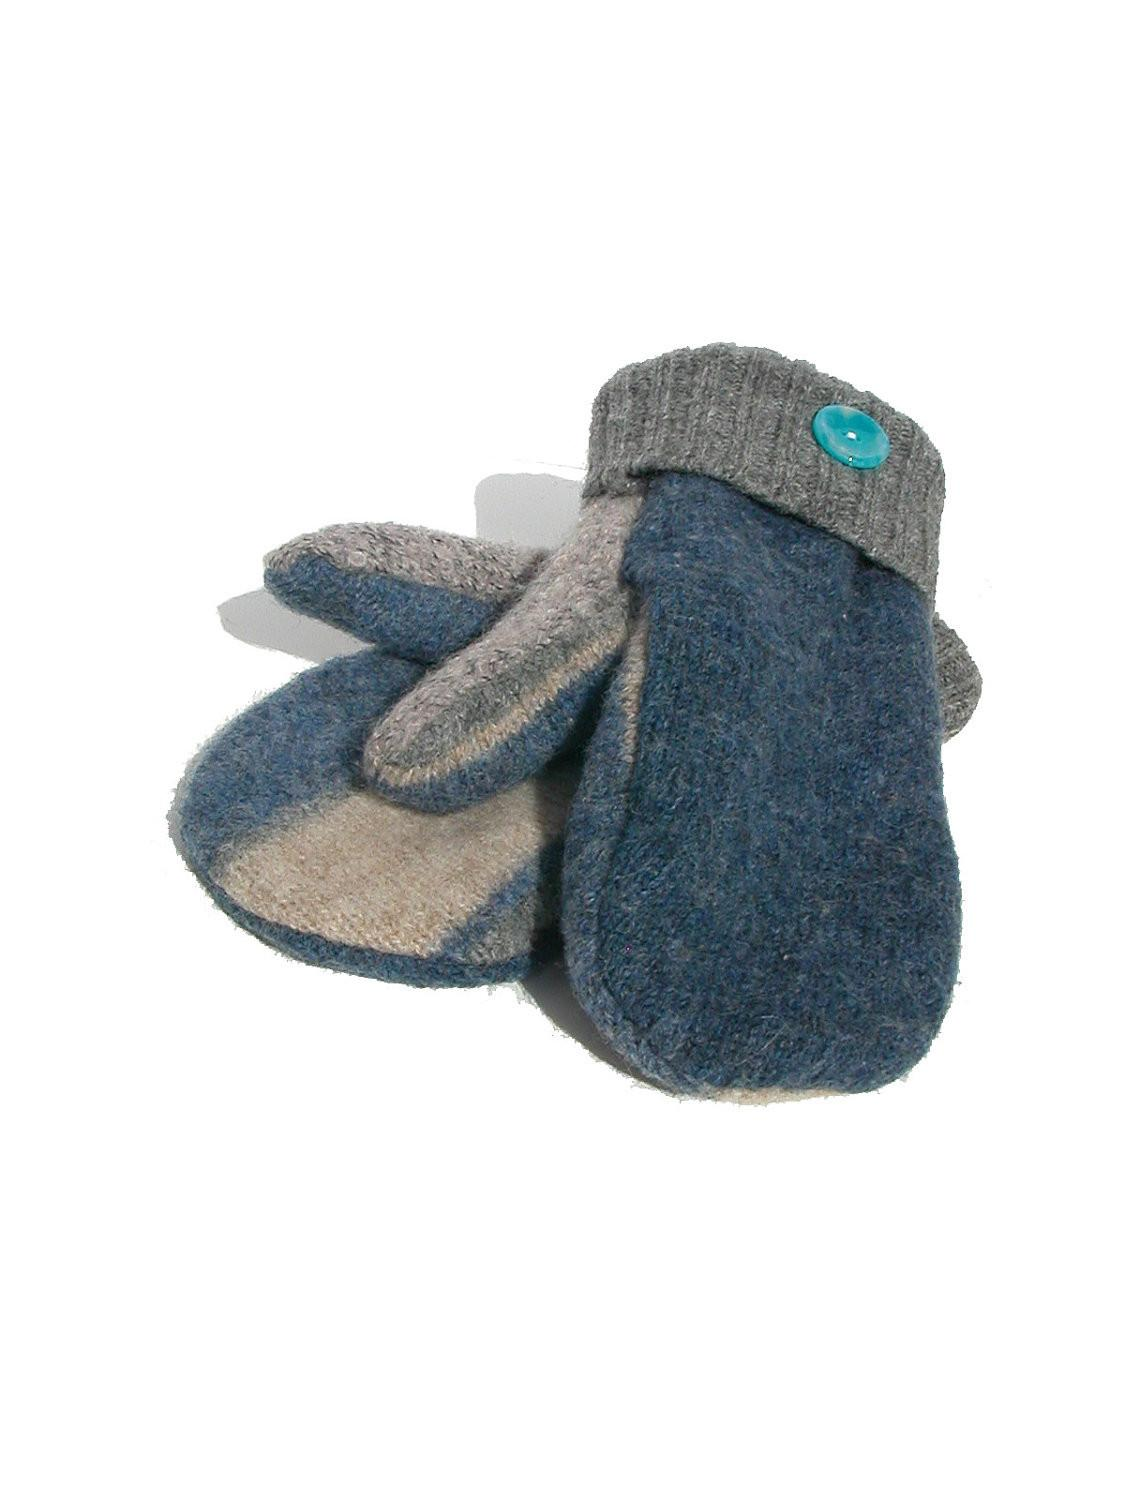 Sweater Mittens Fleece Lined Jeans Boots